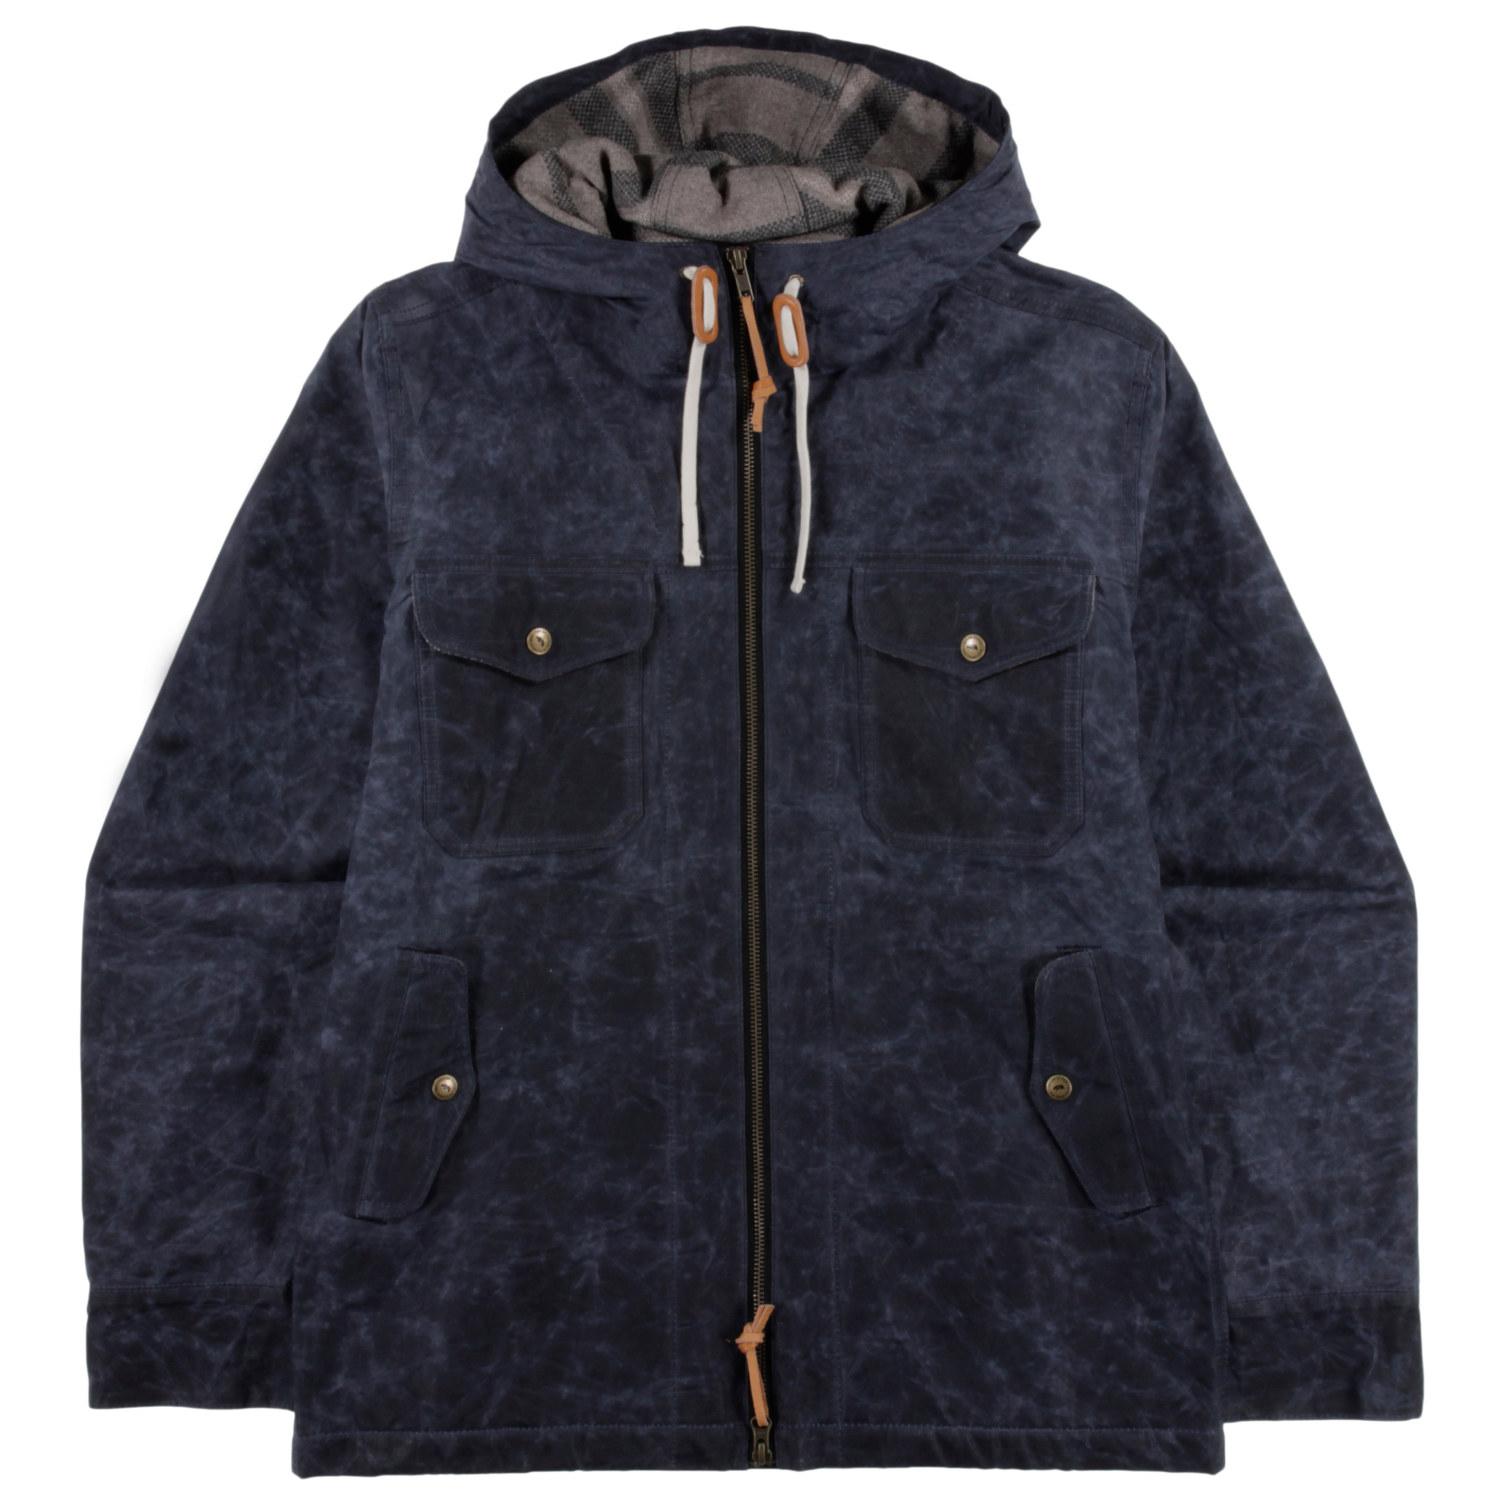 The Winslow Parka